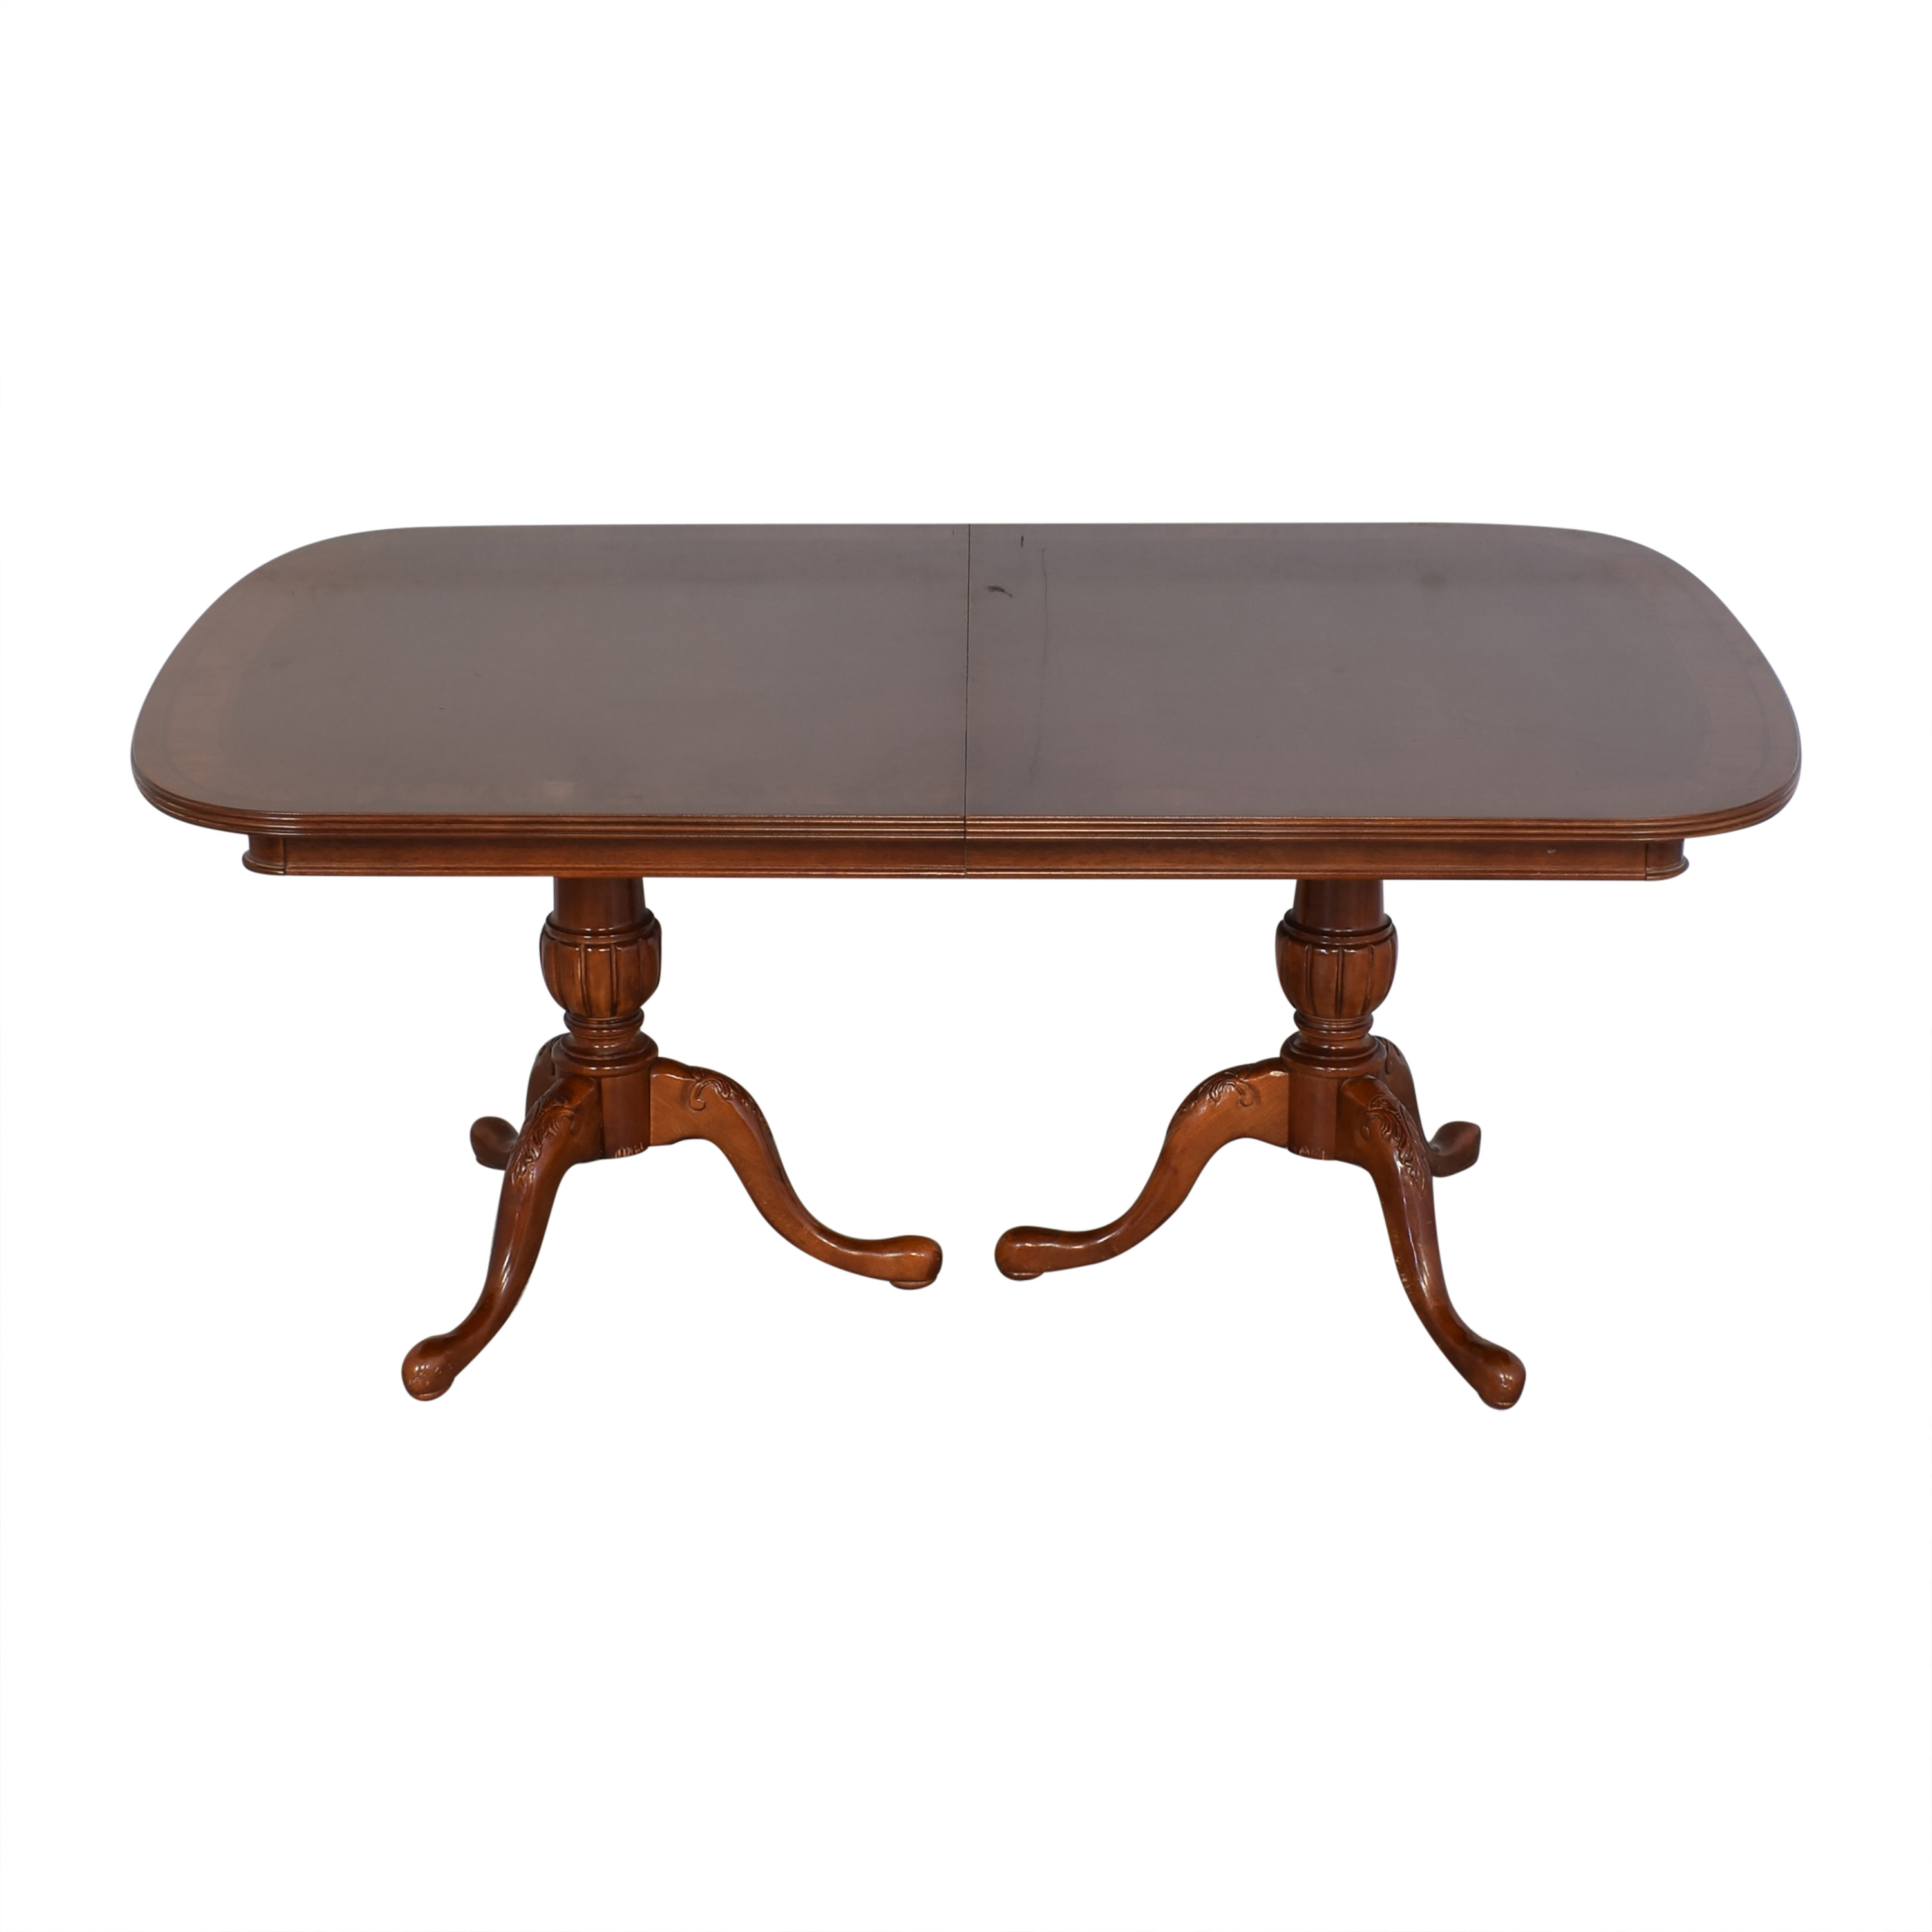 Universal Furniture Double Pedestal Dining Table / Tables